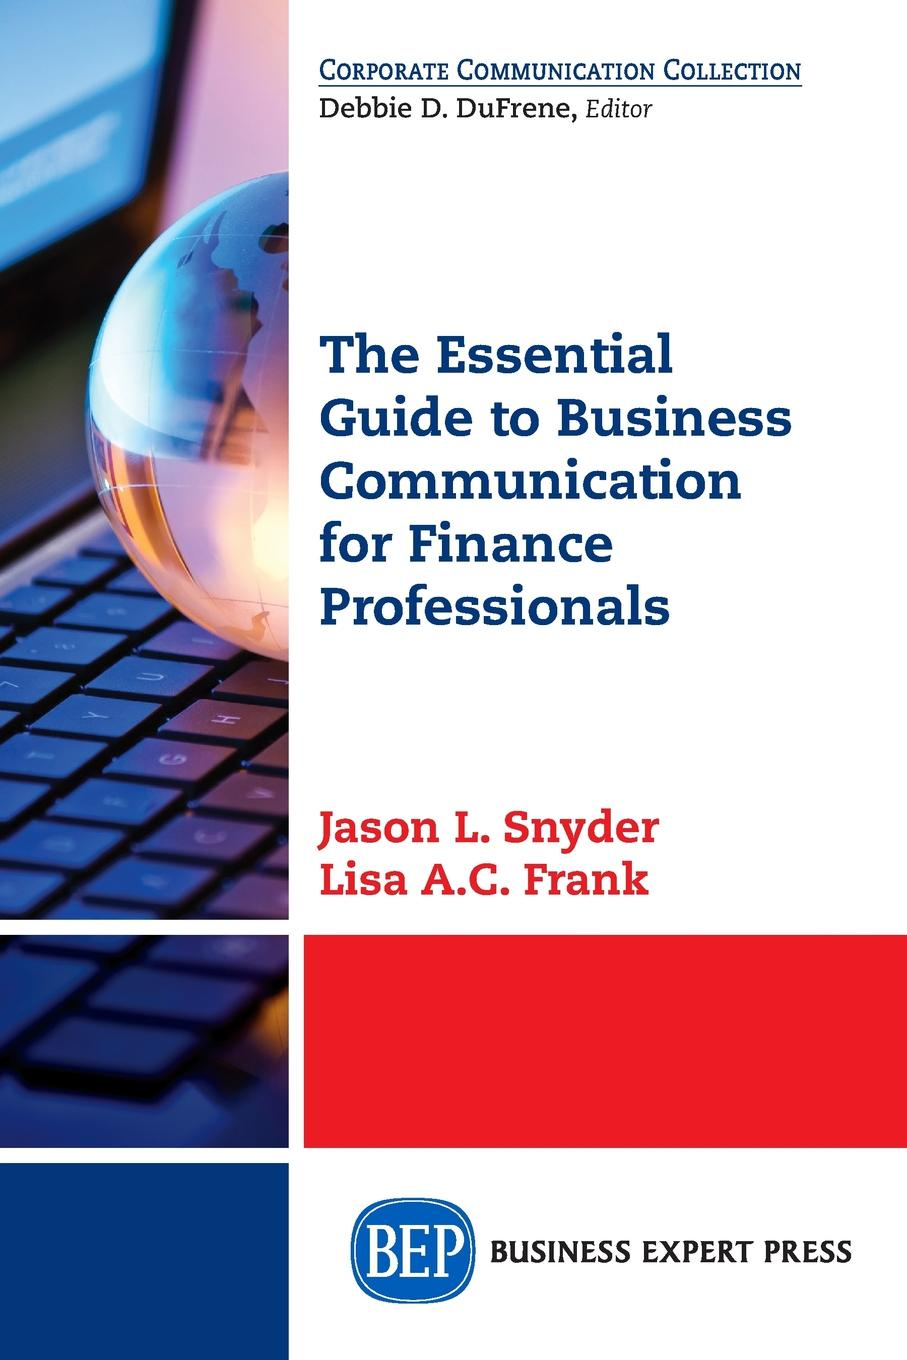 Jason L. Snyder, Lisa A.C. Frank The Essential Guide to Business Communication for Finance Professionals k proctor scott building financial models with microsoft excel a guide for business professionals